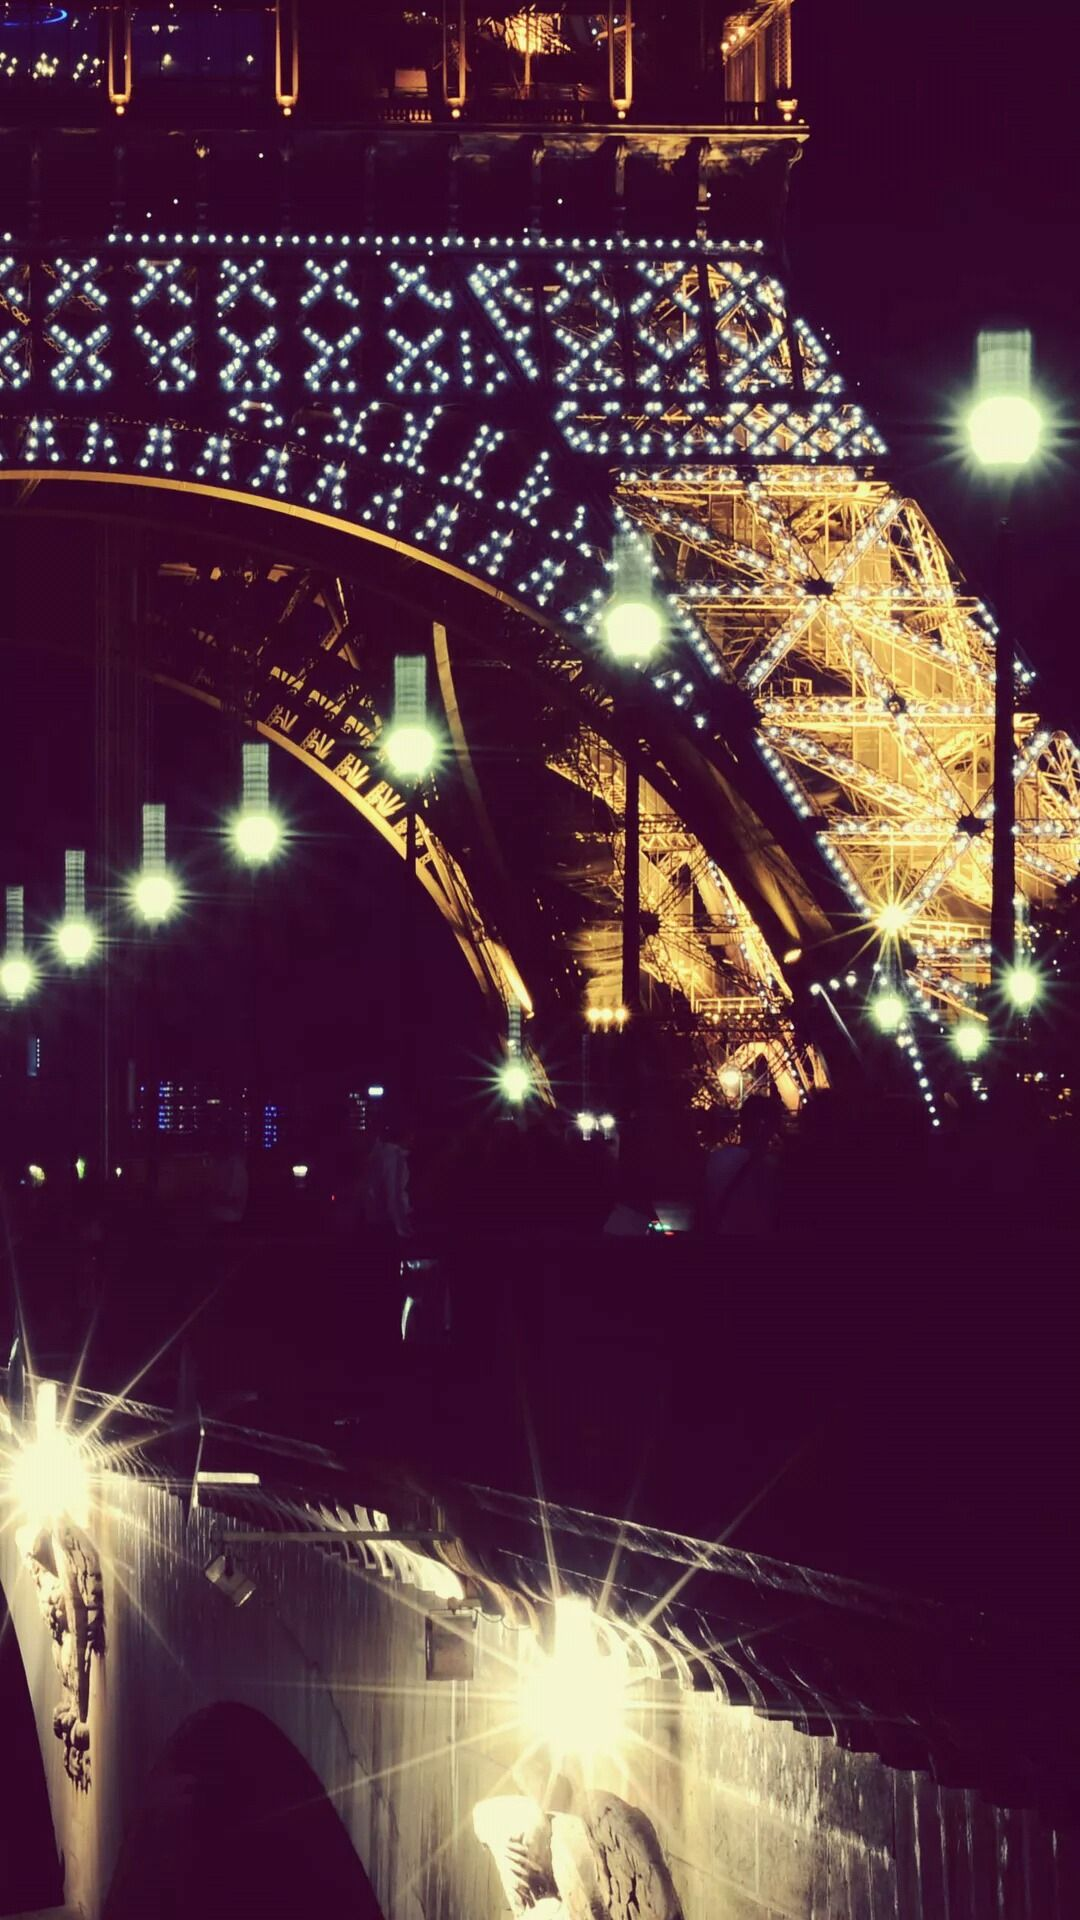 Eiffel Tower at Night Tap to see more of the most romantic Paris